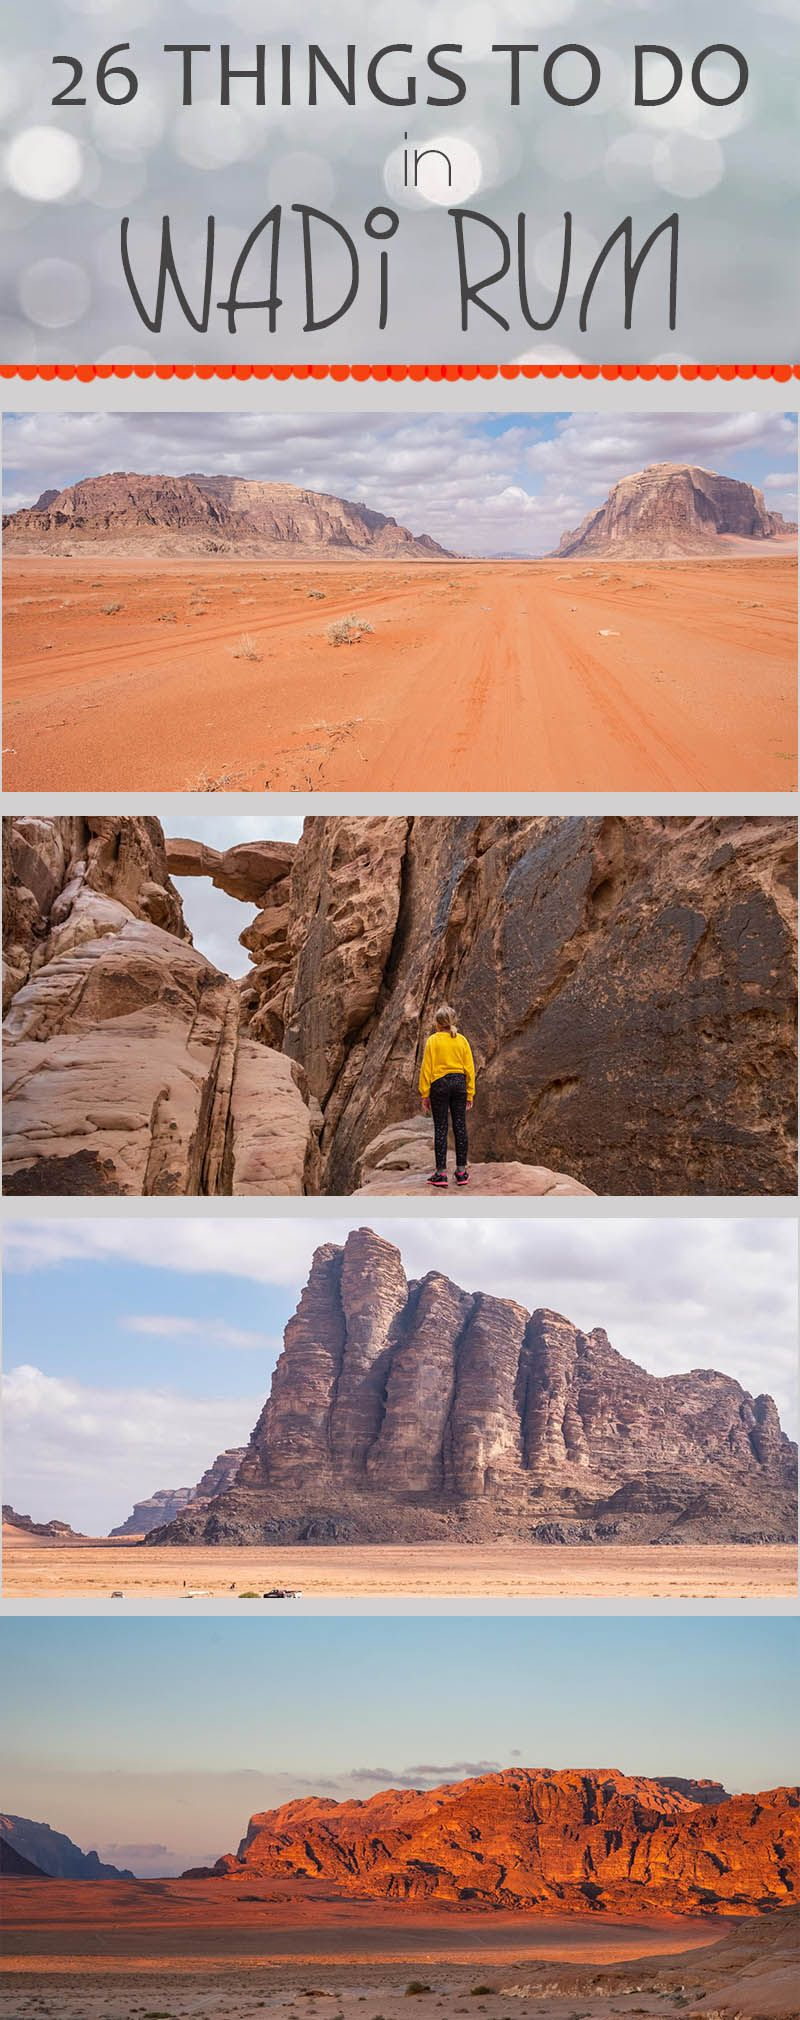 26 things to do in Wadi Rum from Um Sabatah Camp #wadirum